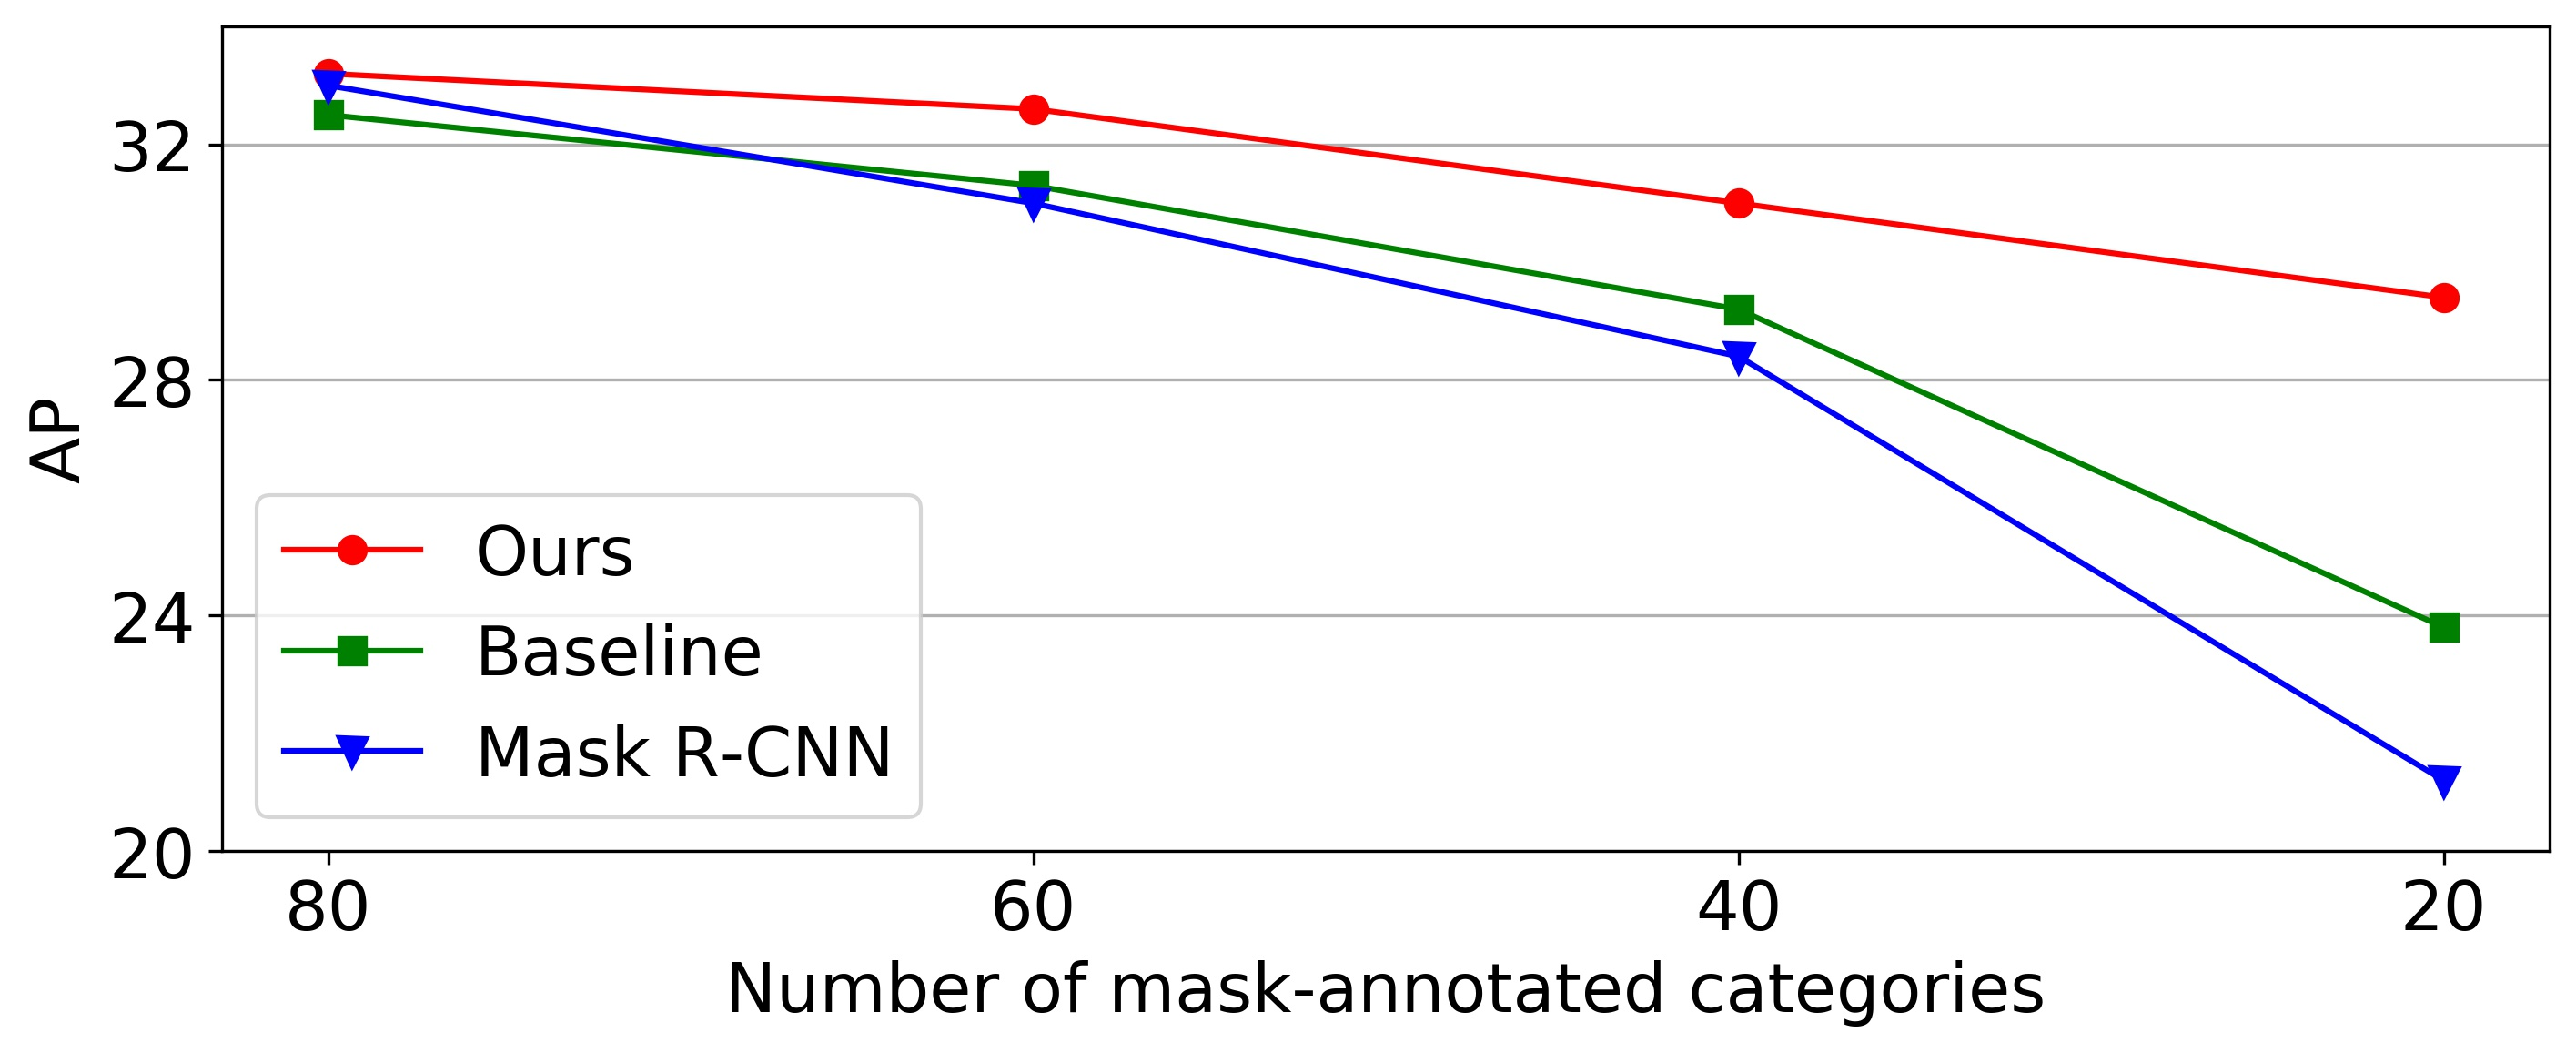 The segmentation performance of different models on a fixed set of novel categories as a function of number of mask-annotated (base) categories. The novel categories are randomly selected from COCO dataset.